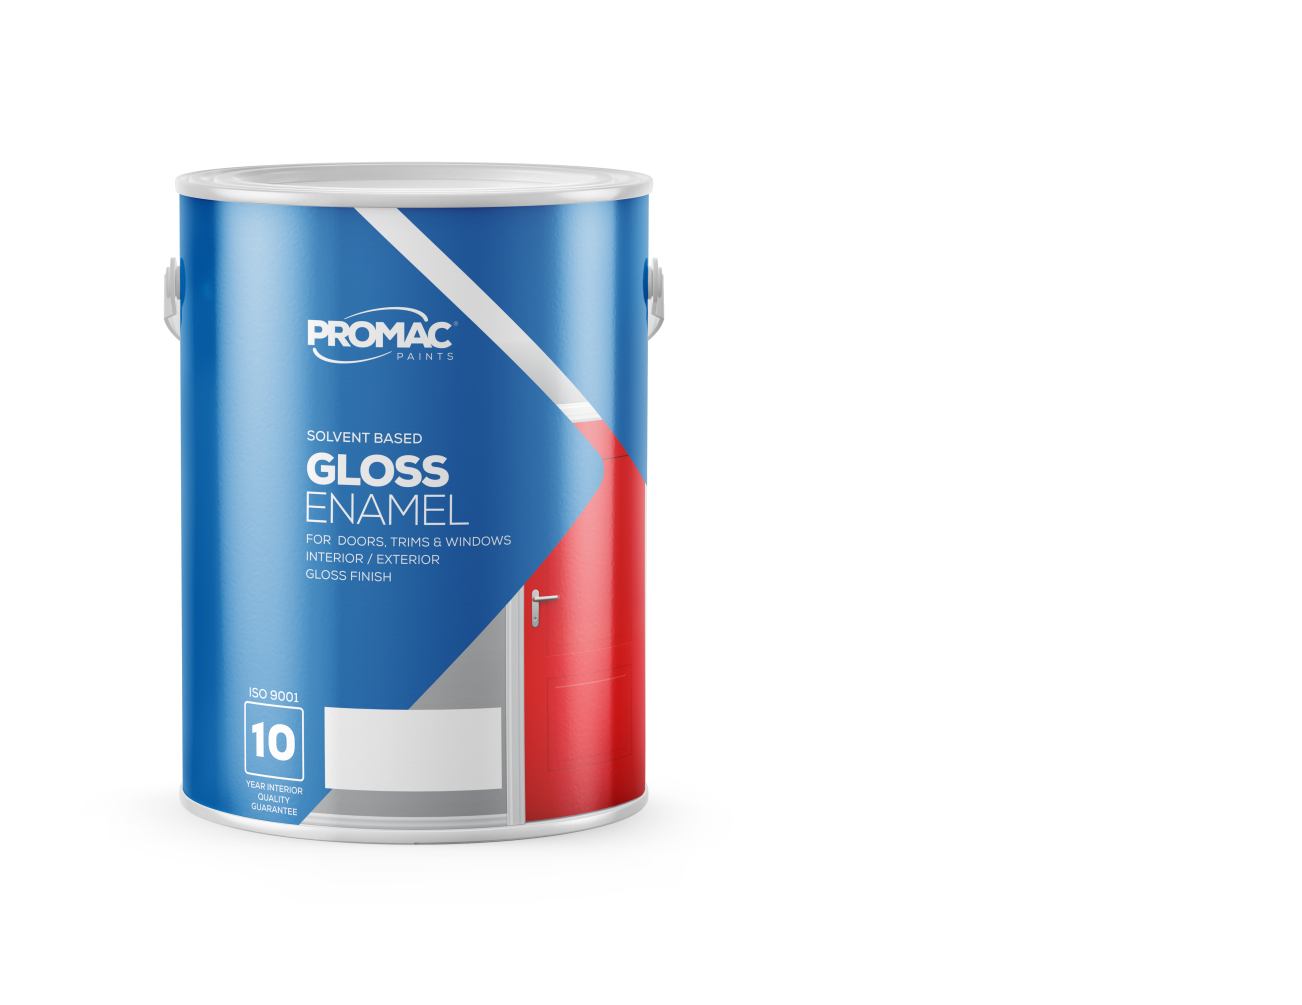 GLOSSENAMEL - SOLVENT BASEDPromac Gloss Enamel is a high quality enamel for interior or exterior surfaces where a glossy, durable finish is required. It provides excellent adhesion and protection of primed or previously painted wood, metal or plaster surfaces such as trims, doors, frames, skirtings and high traffic areas.